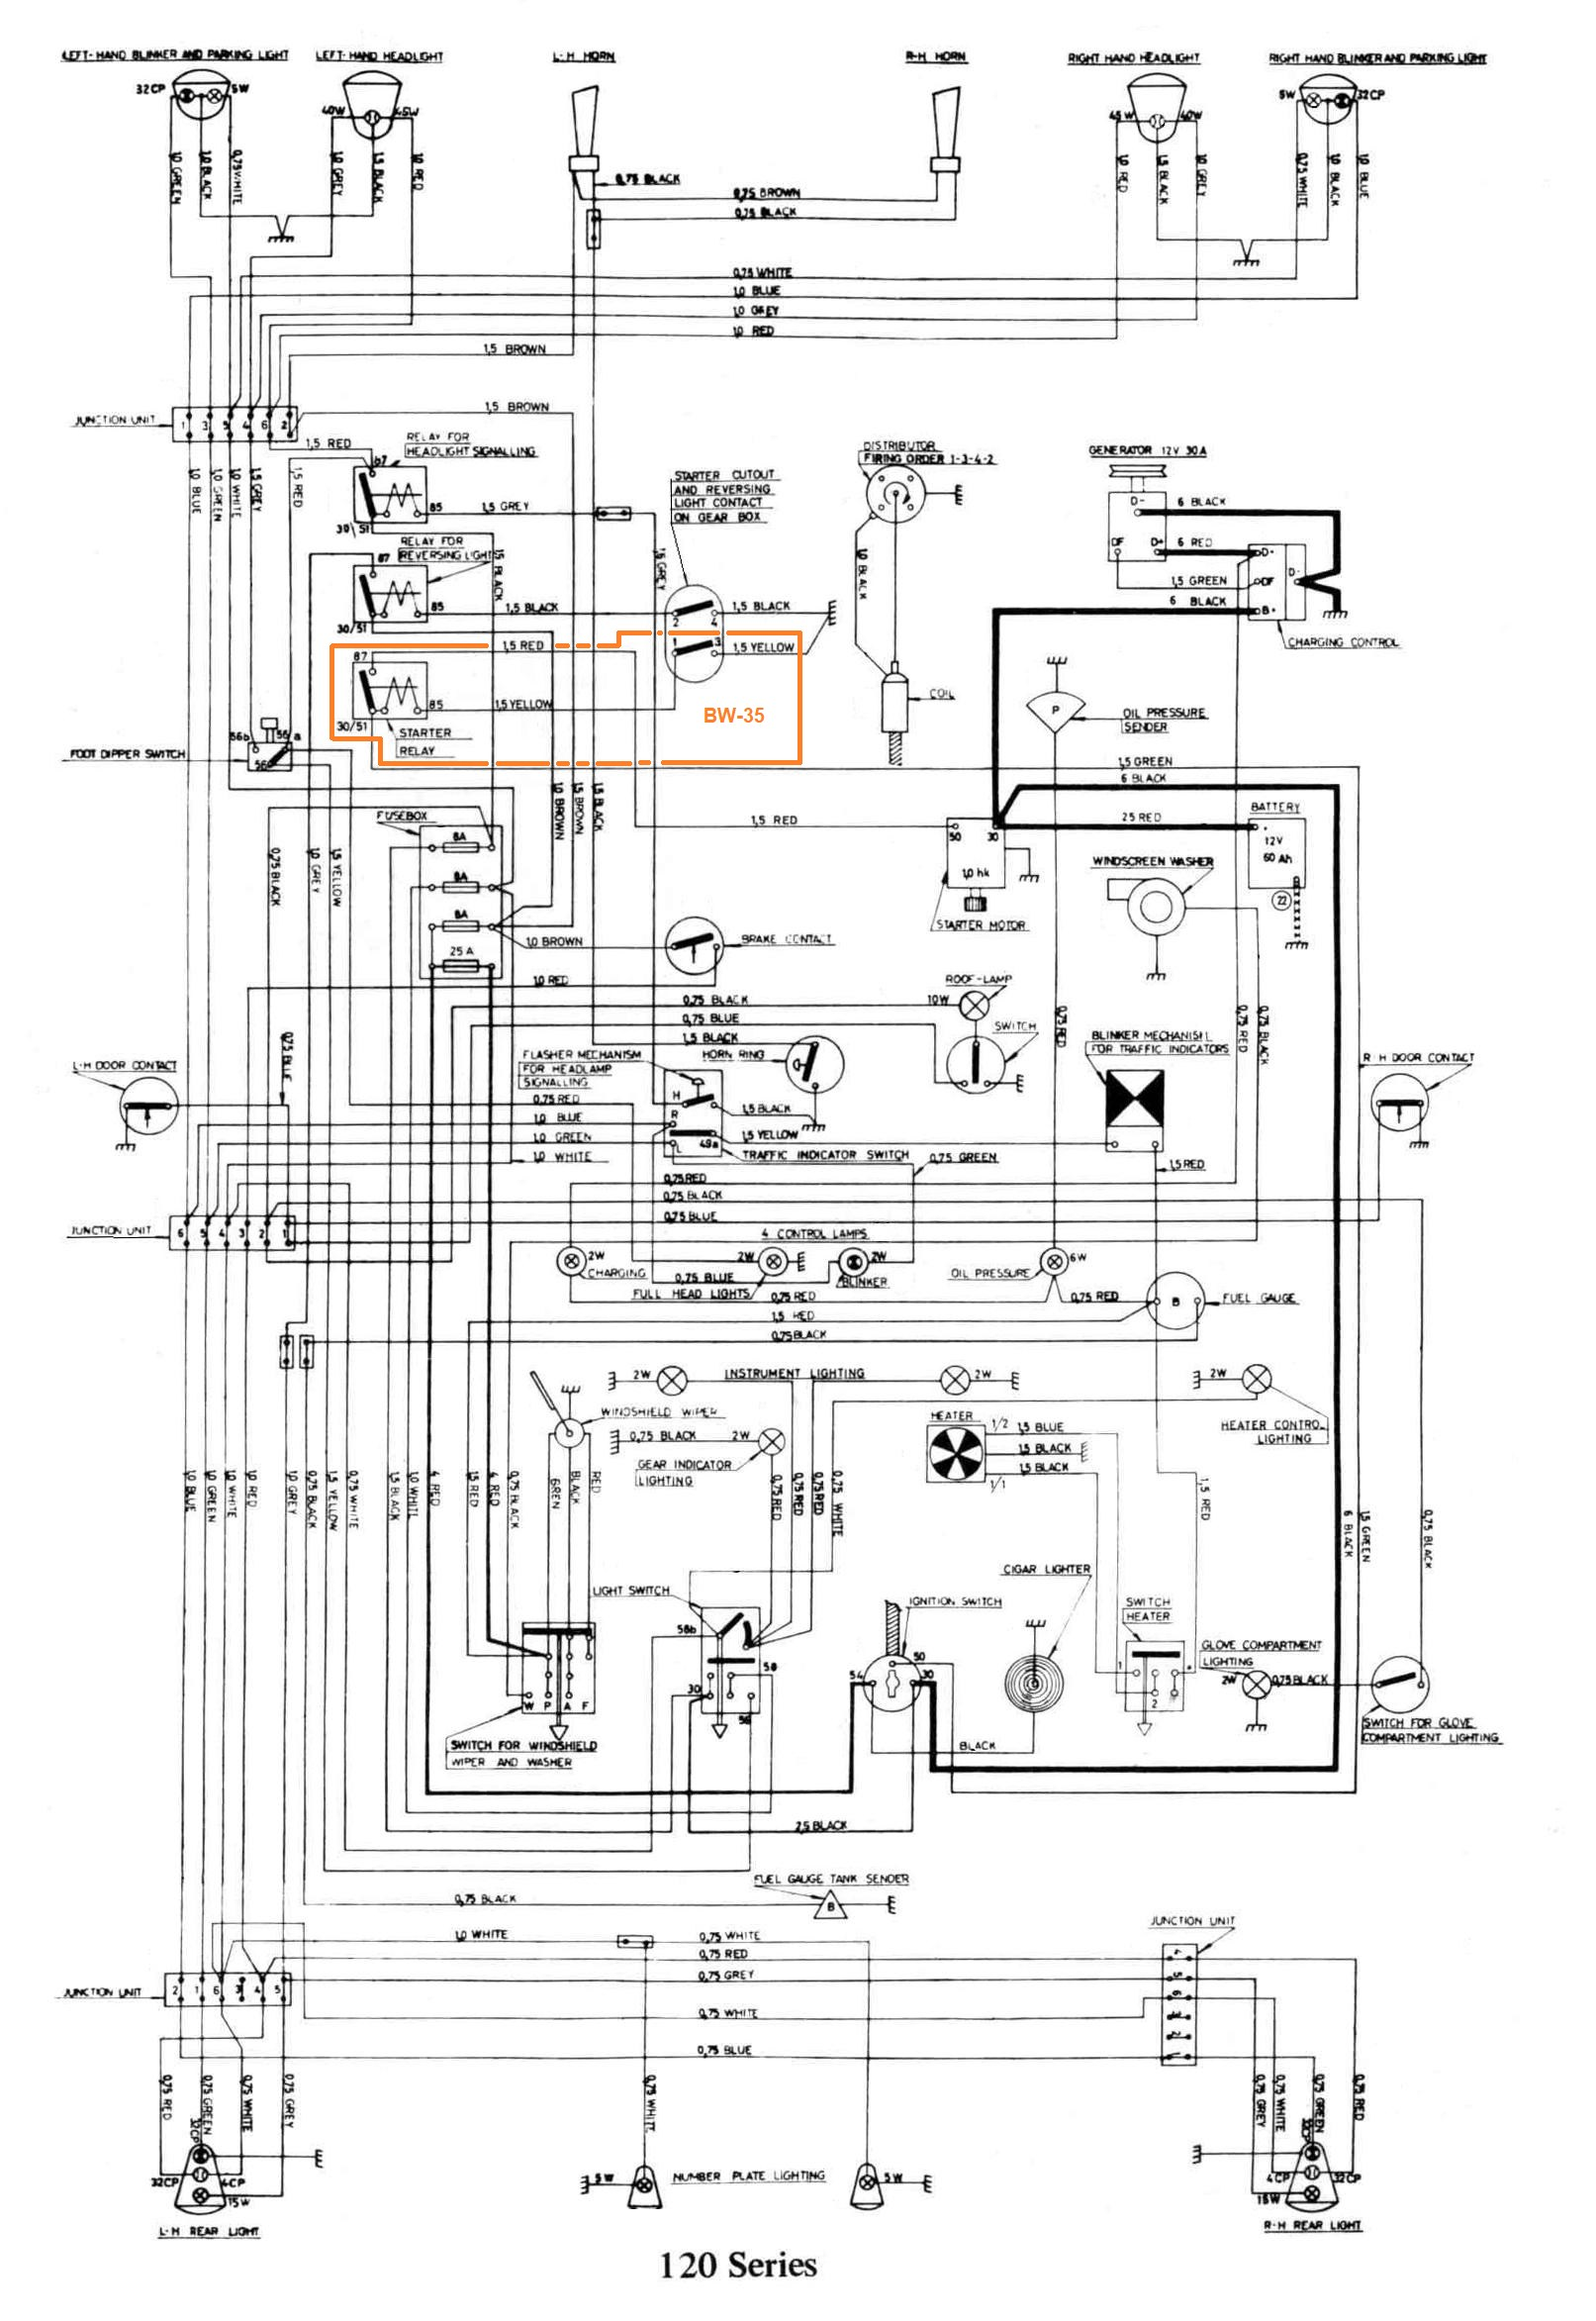 122S Wiring Diagram?resize\\\\\\\\\\\\\\\\\\\\\\\\\\\\\\\=665%2C954 schematic wiring diagram drvasmb2051 wiring diagrams  at gsmx.co